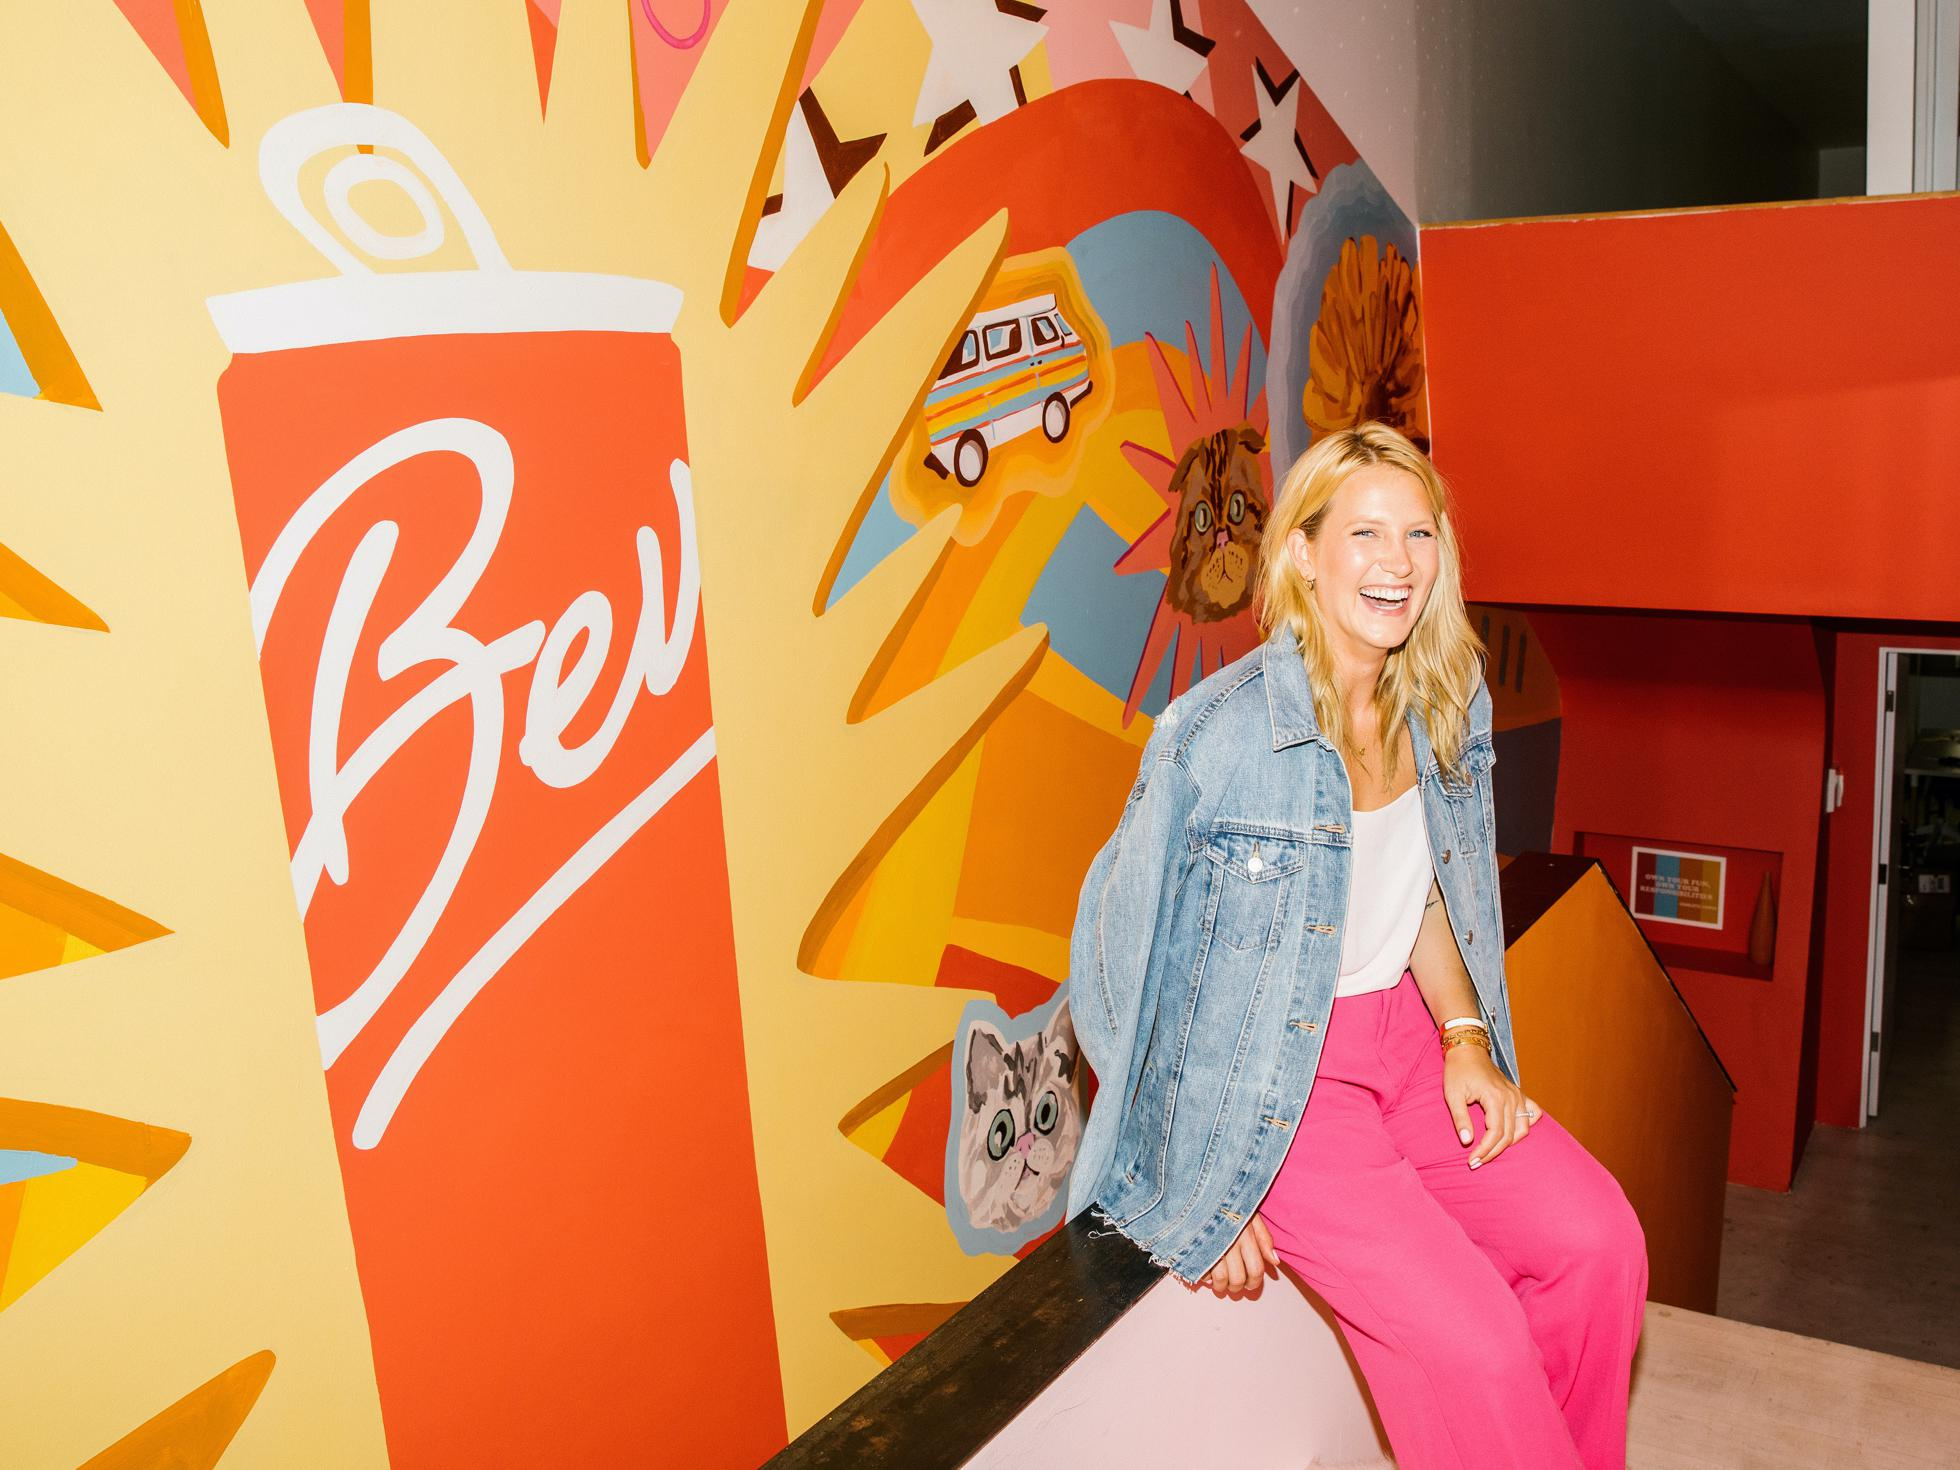 Alix Peabody founded Bev in 2017. She runs from a headquarters in Venice Beach, California.